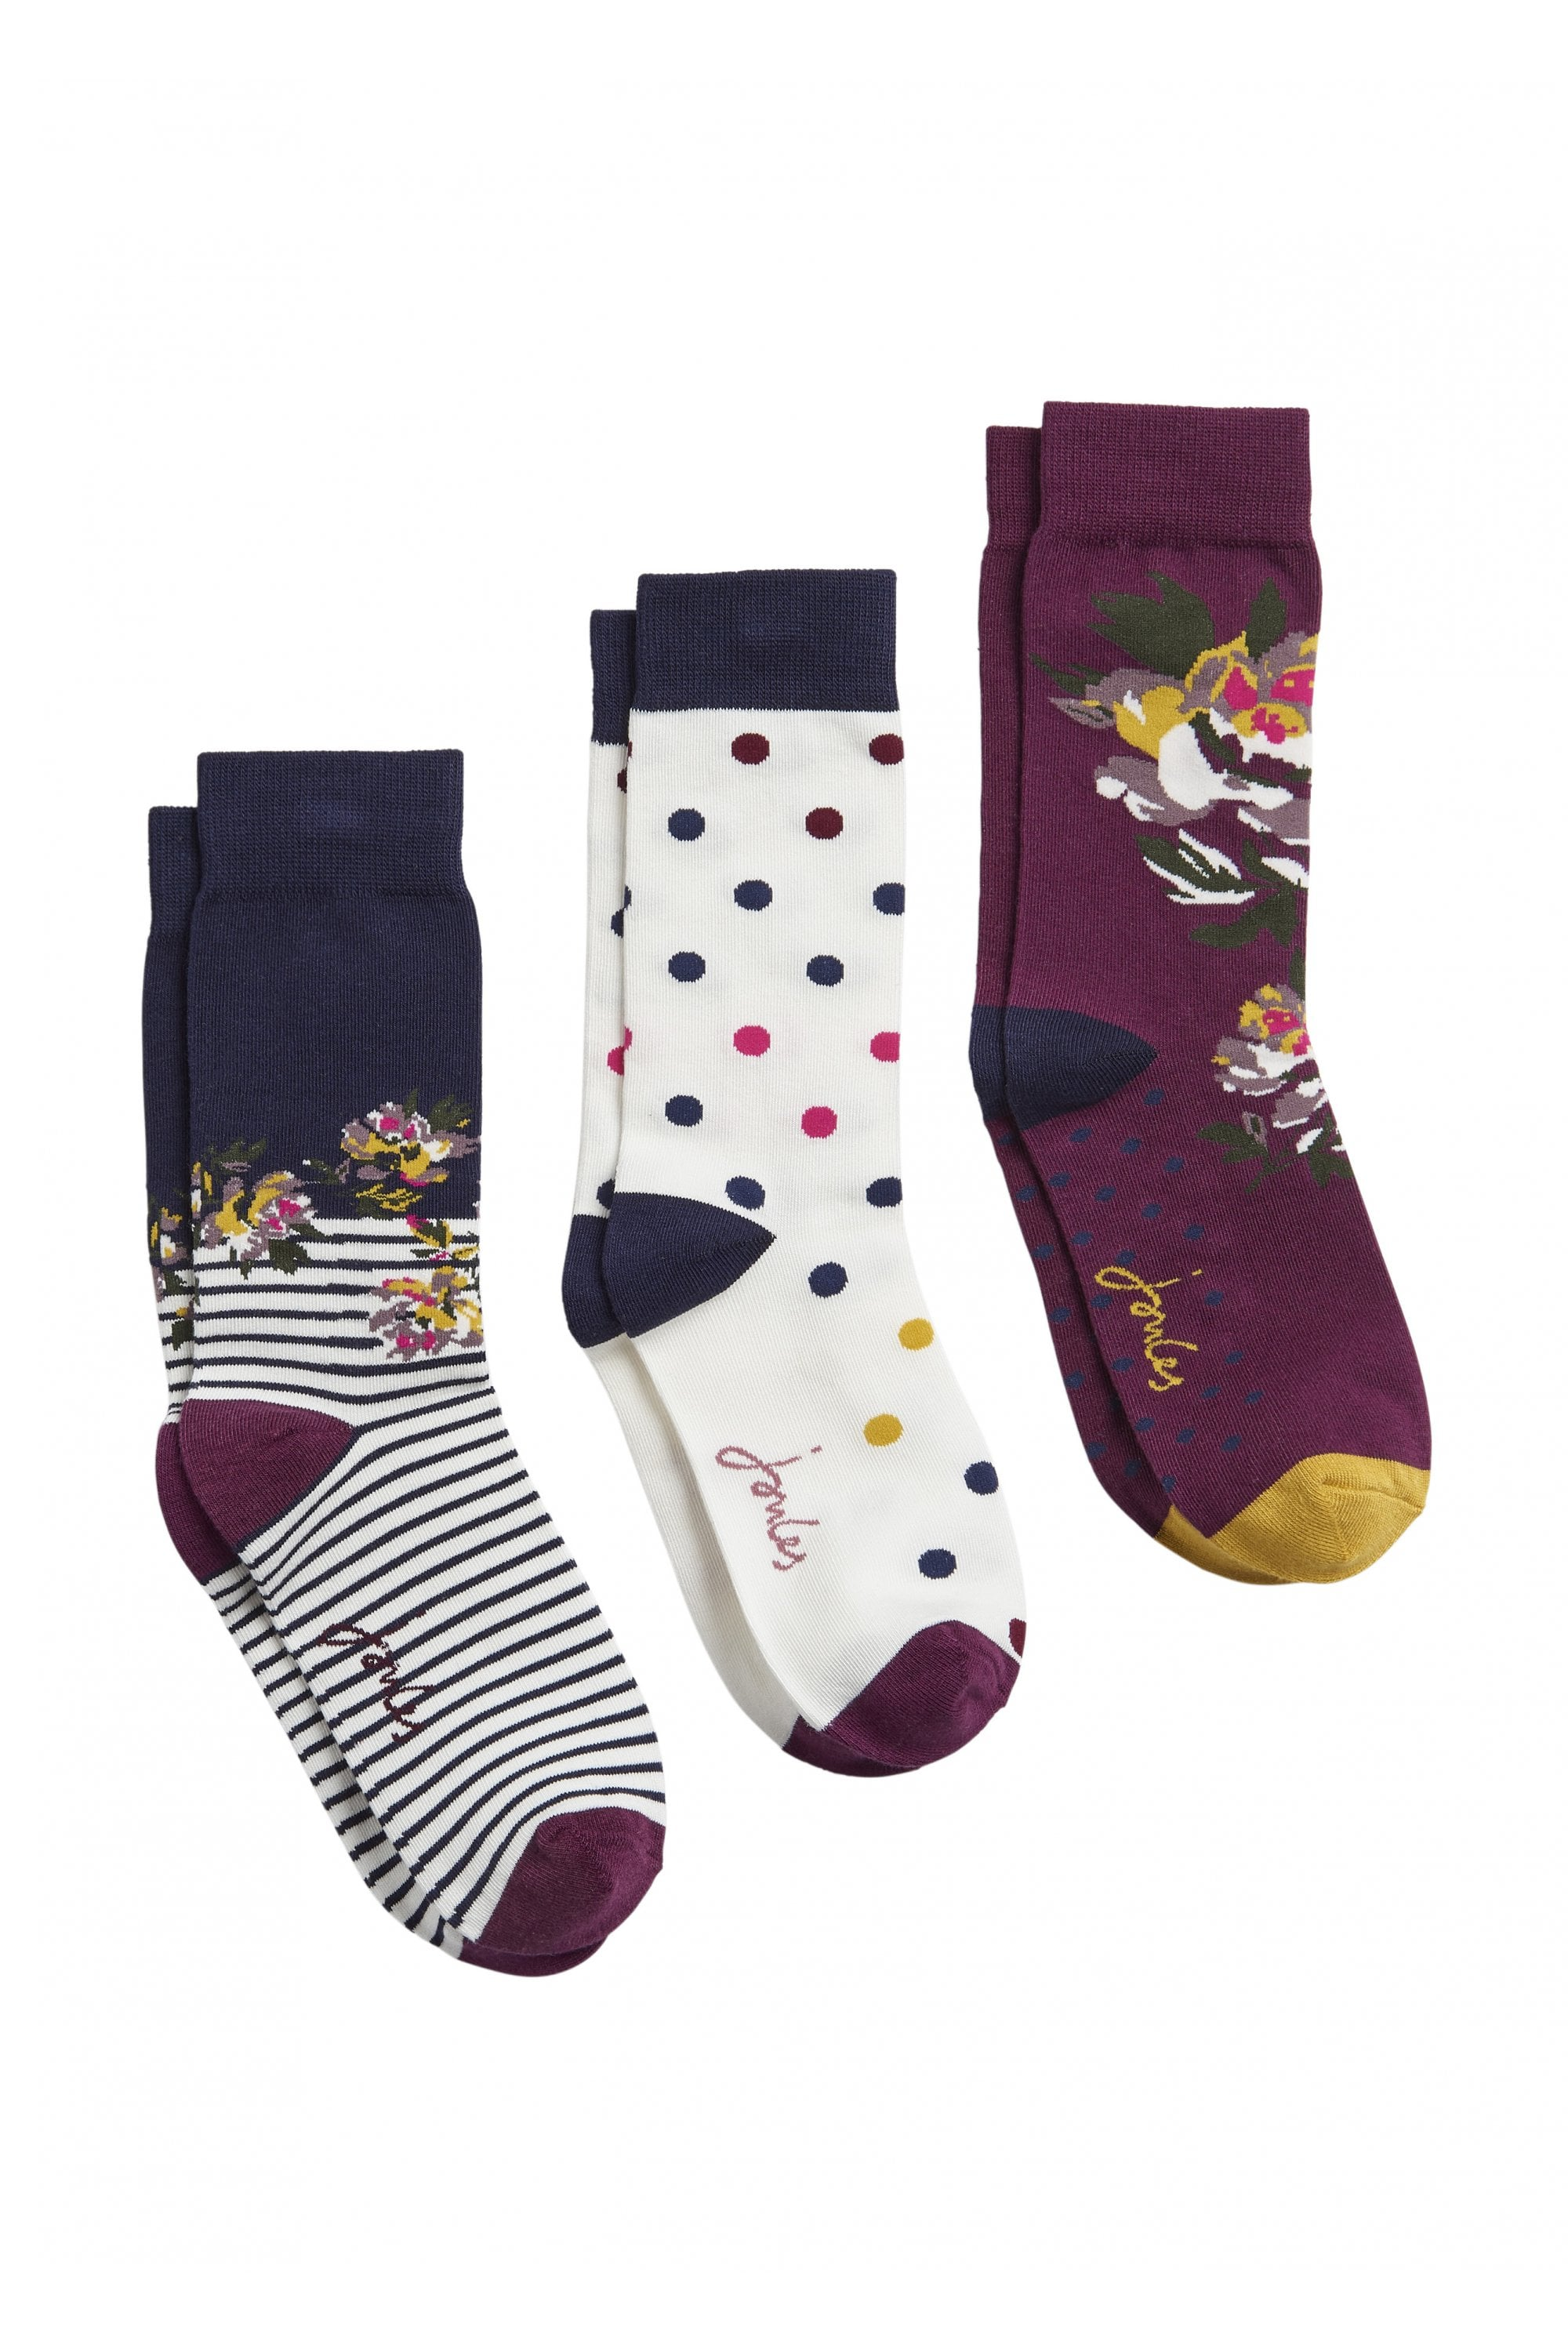 Joules Brilliant Bamboo 3pk Womens Underwear Socks Navy Multi Floral All Sizes